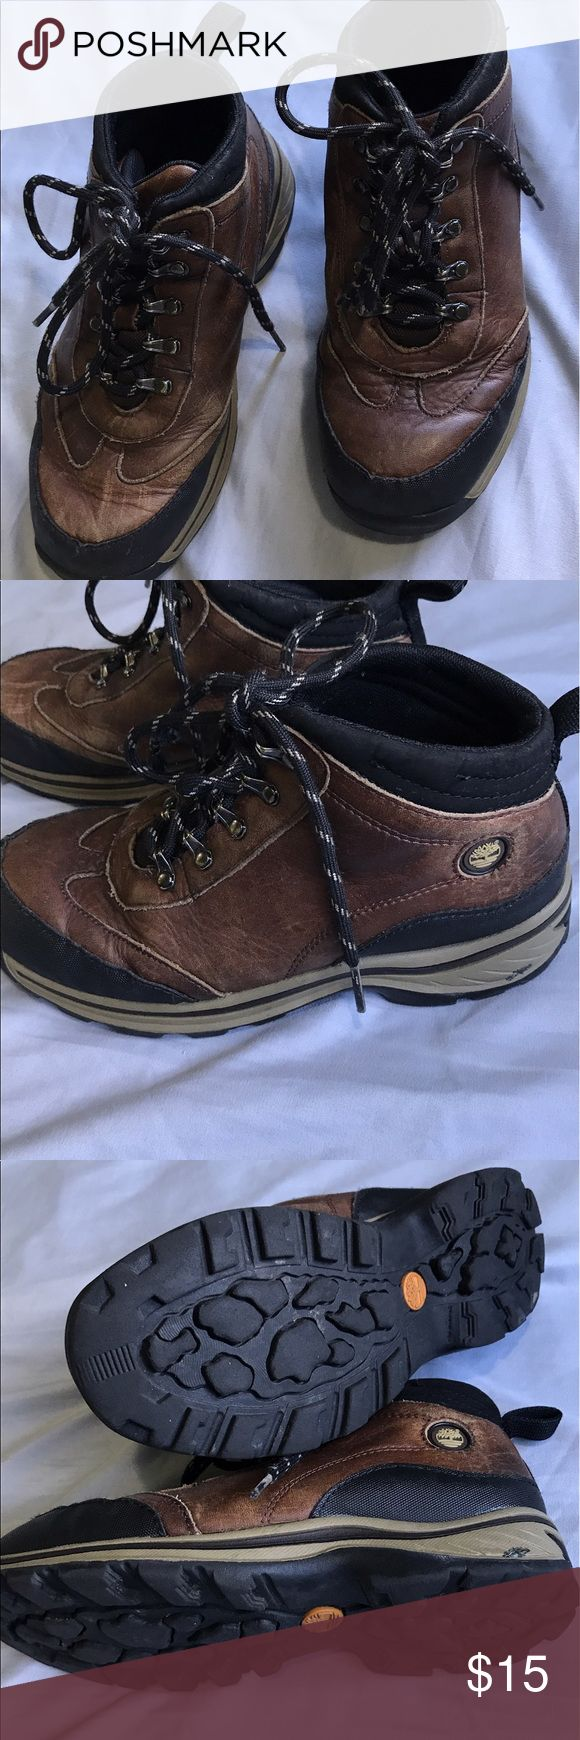 Boy's Timberland boots, size 3 Great Deal! Boy's Timberland boots, size 3. Good condition with minor flaws, one end of shoelace is damaged but can be easily replaced.  Offers discount for bundle. Timberland Shoes